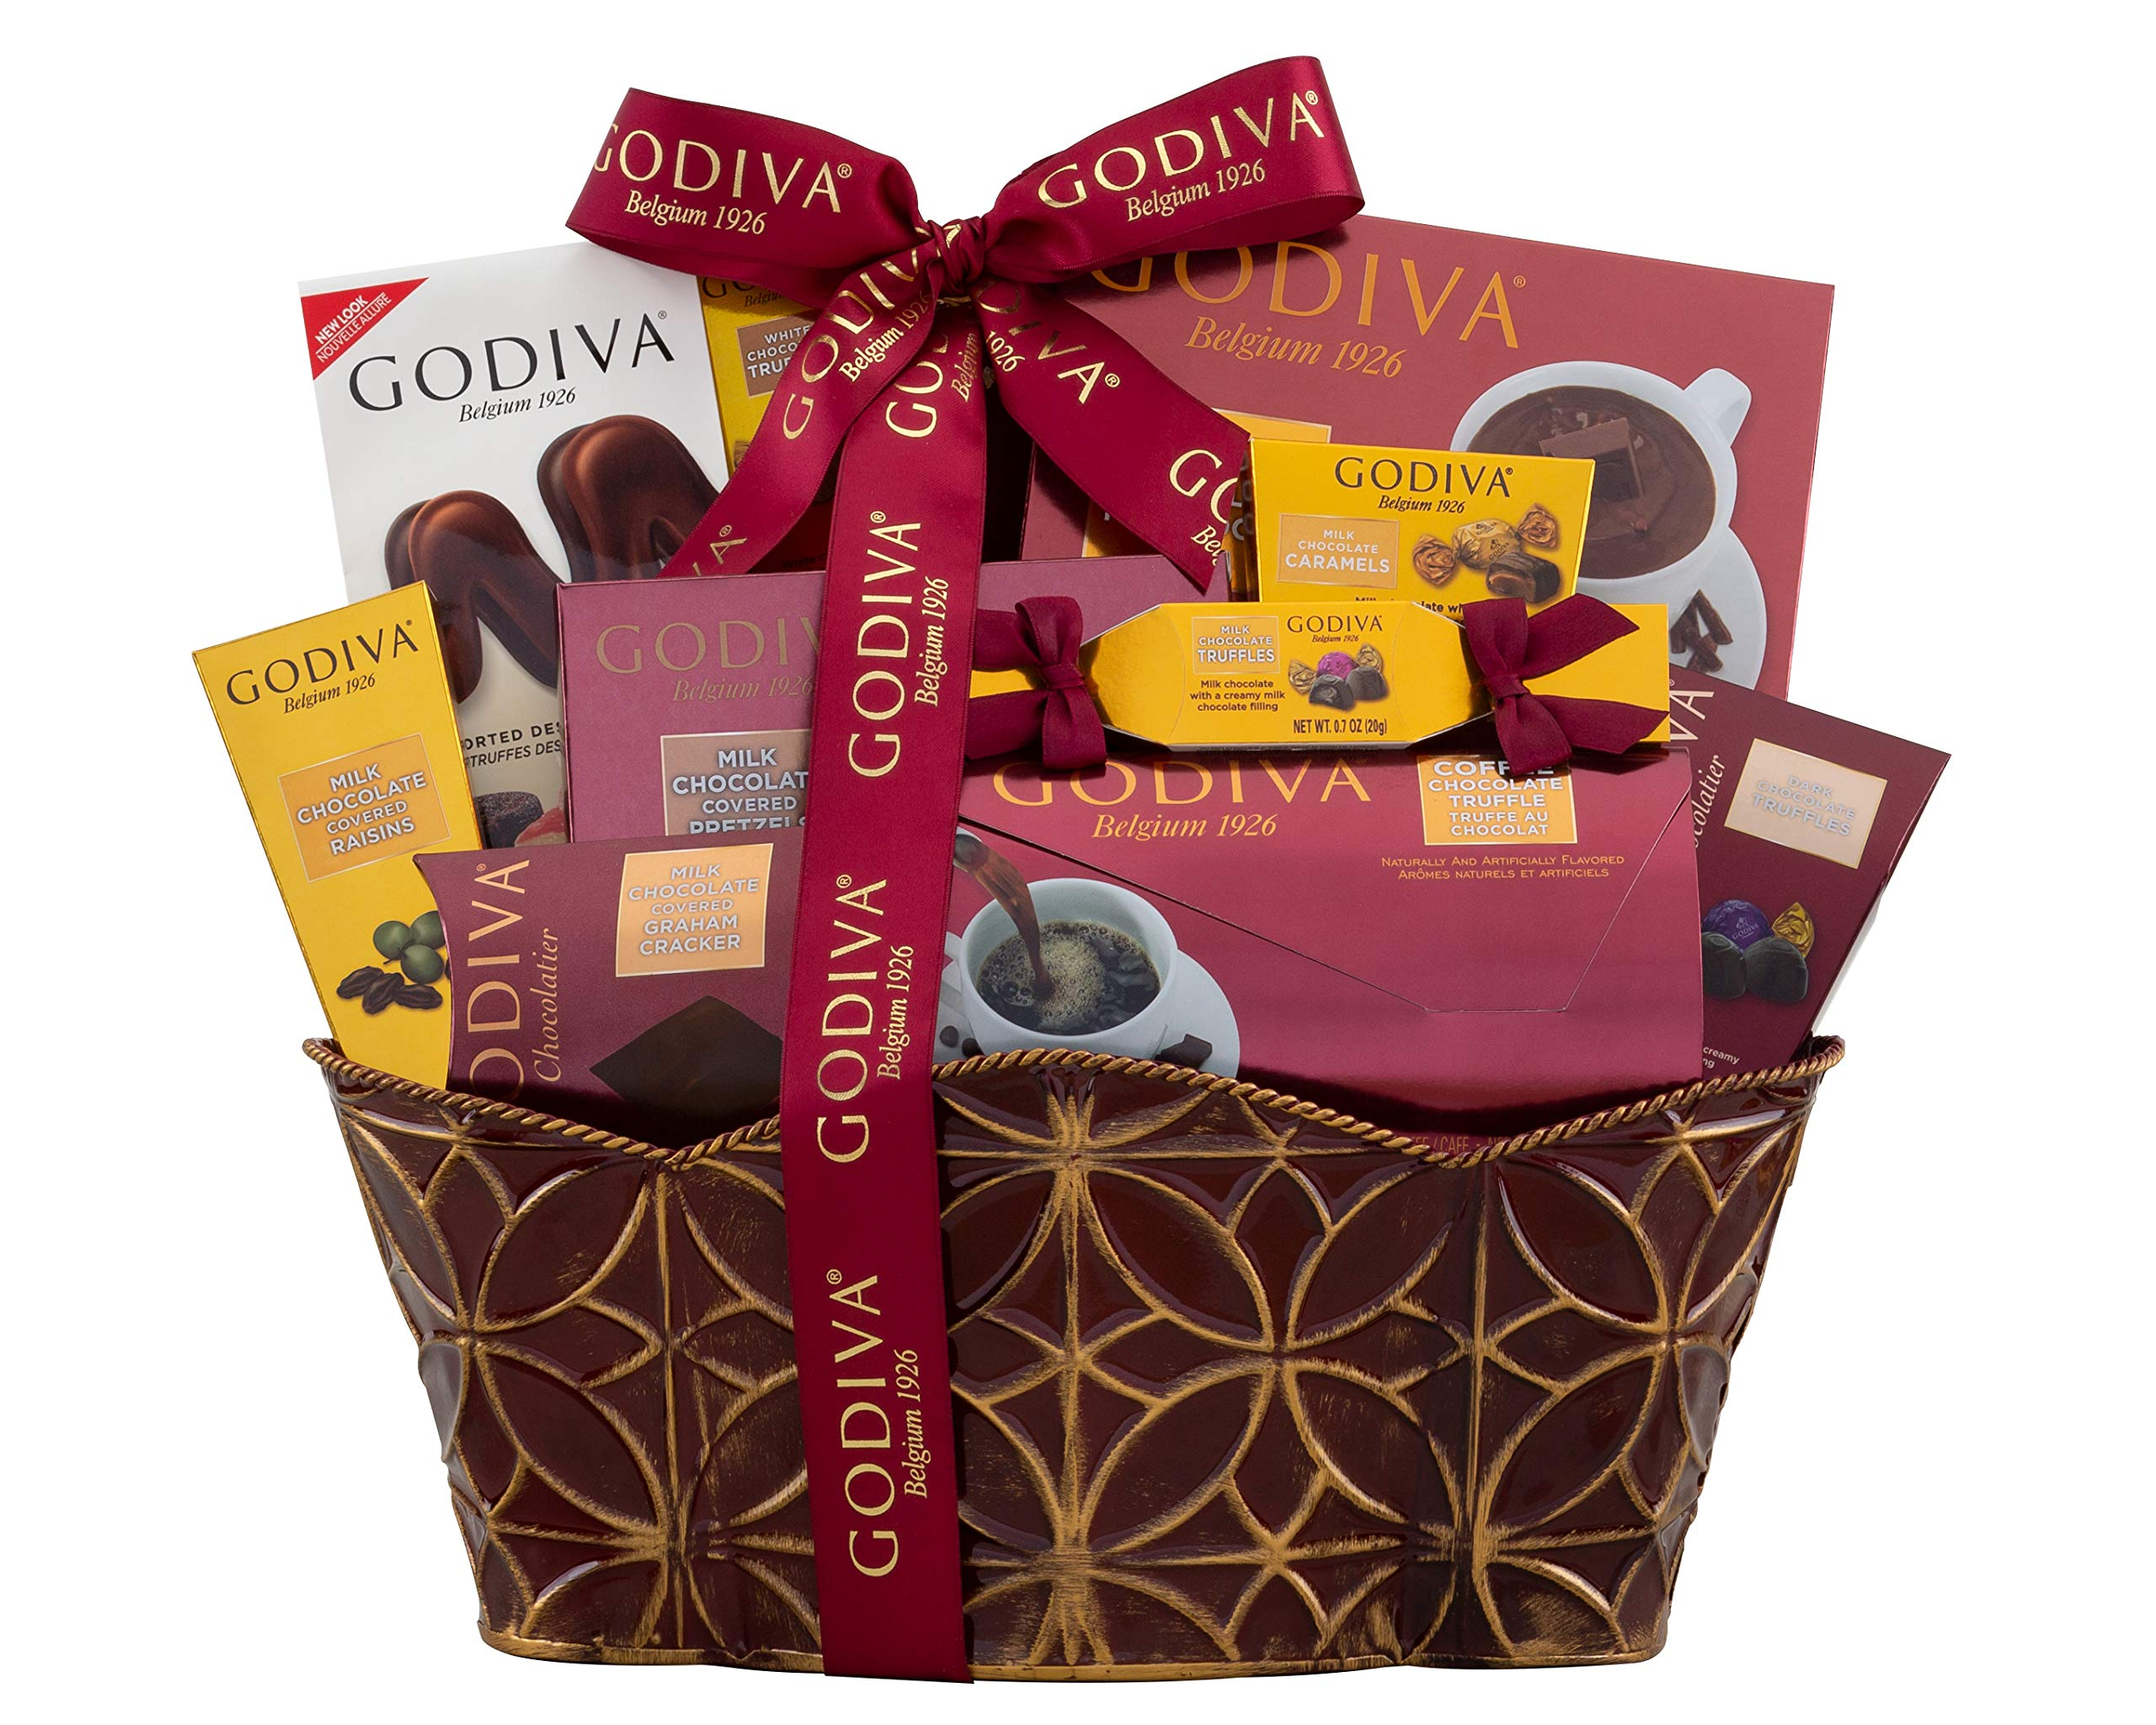 Wine Country Gift Baskets Godiva Collection Gift Basket. Christmas Gift Basket. Holiday Gift Basket. Chocolate Gift Basket. Belgian Chocolate Gift Basket. Great for Co-Workers Gift Basket, Family Gift by Wine Country Gift Baskets